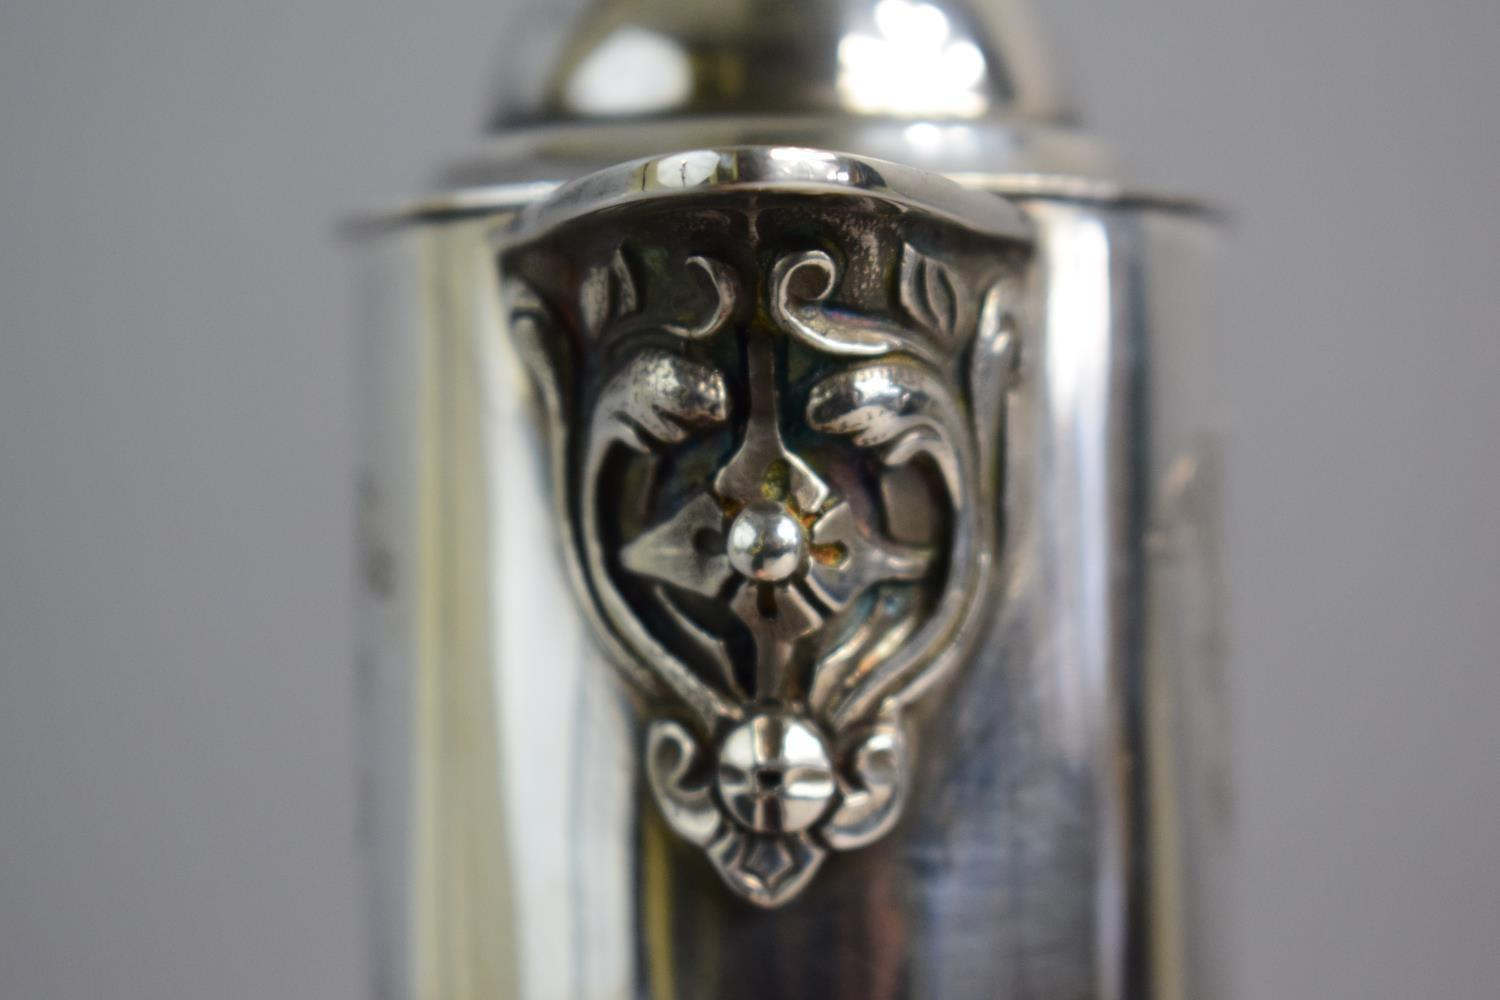 Lot 364 - A Silver Mounted Etched Glass Claret Jug with Welsh Dragon Finial and Fleur De Lys Decoration.